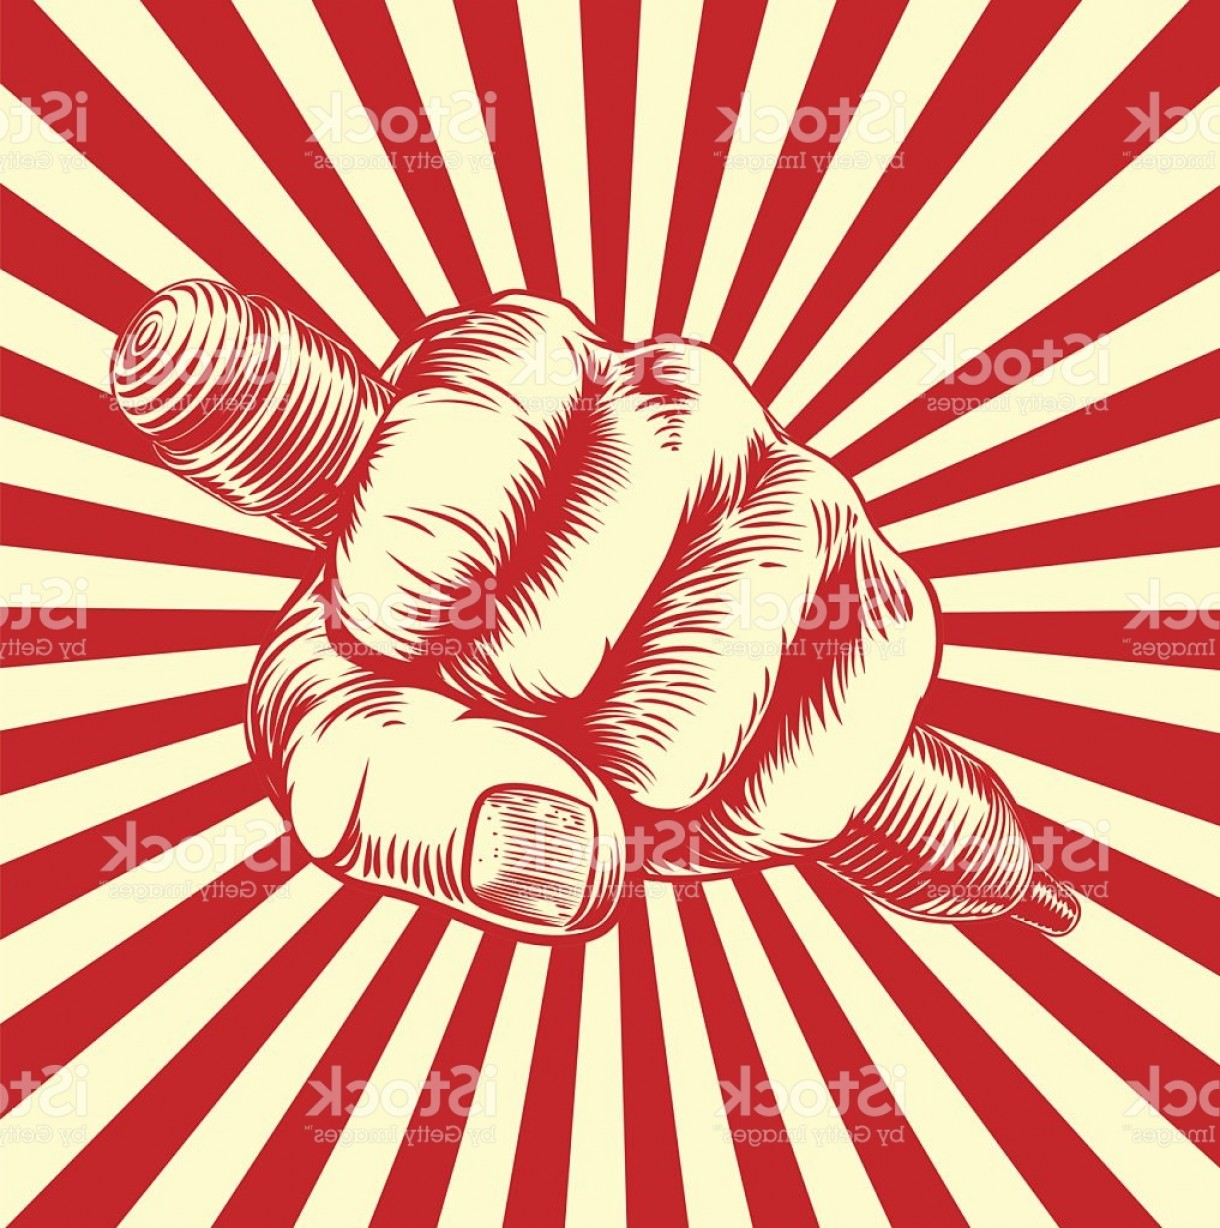 Propaganda Art Poster Vector: Propaganda Woodcut Pencil Fist Hand Gm